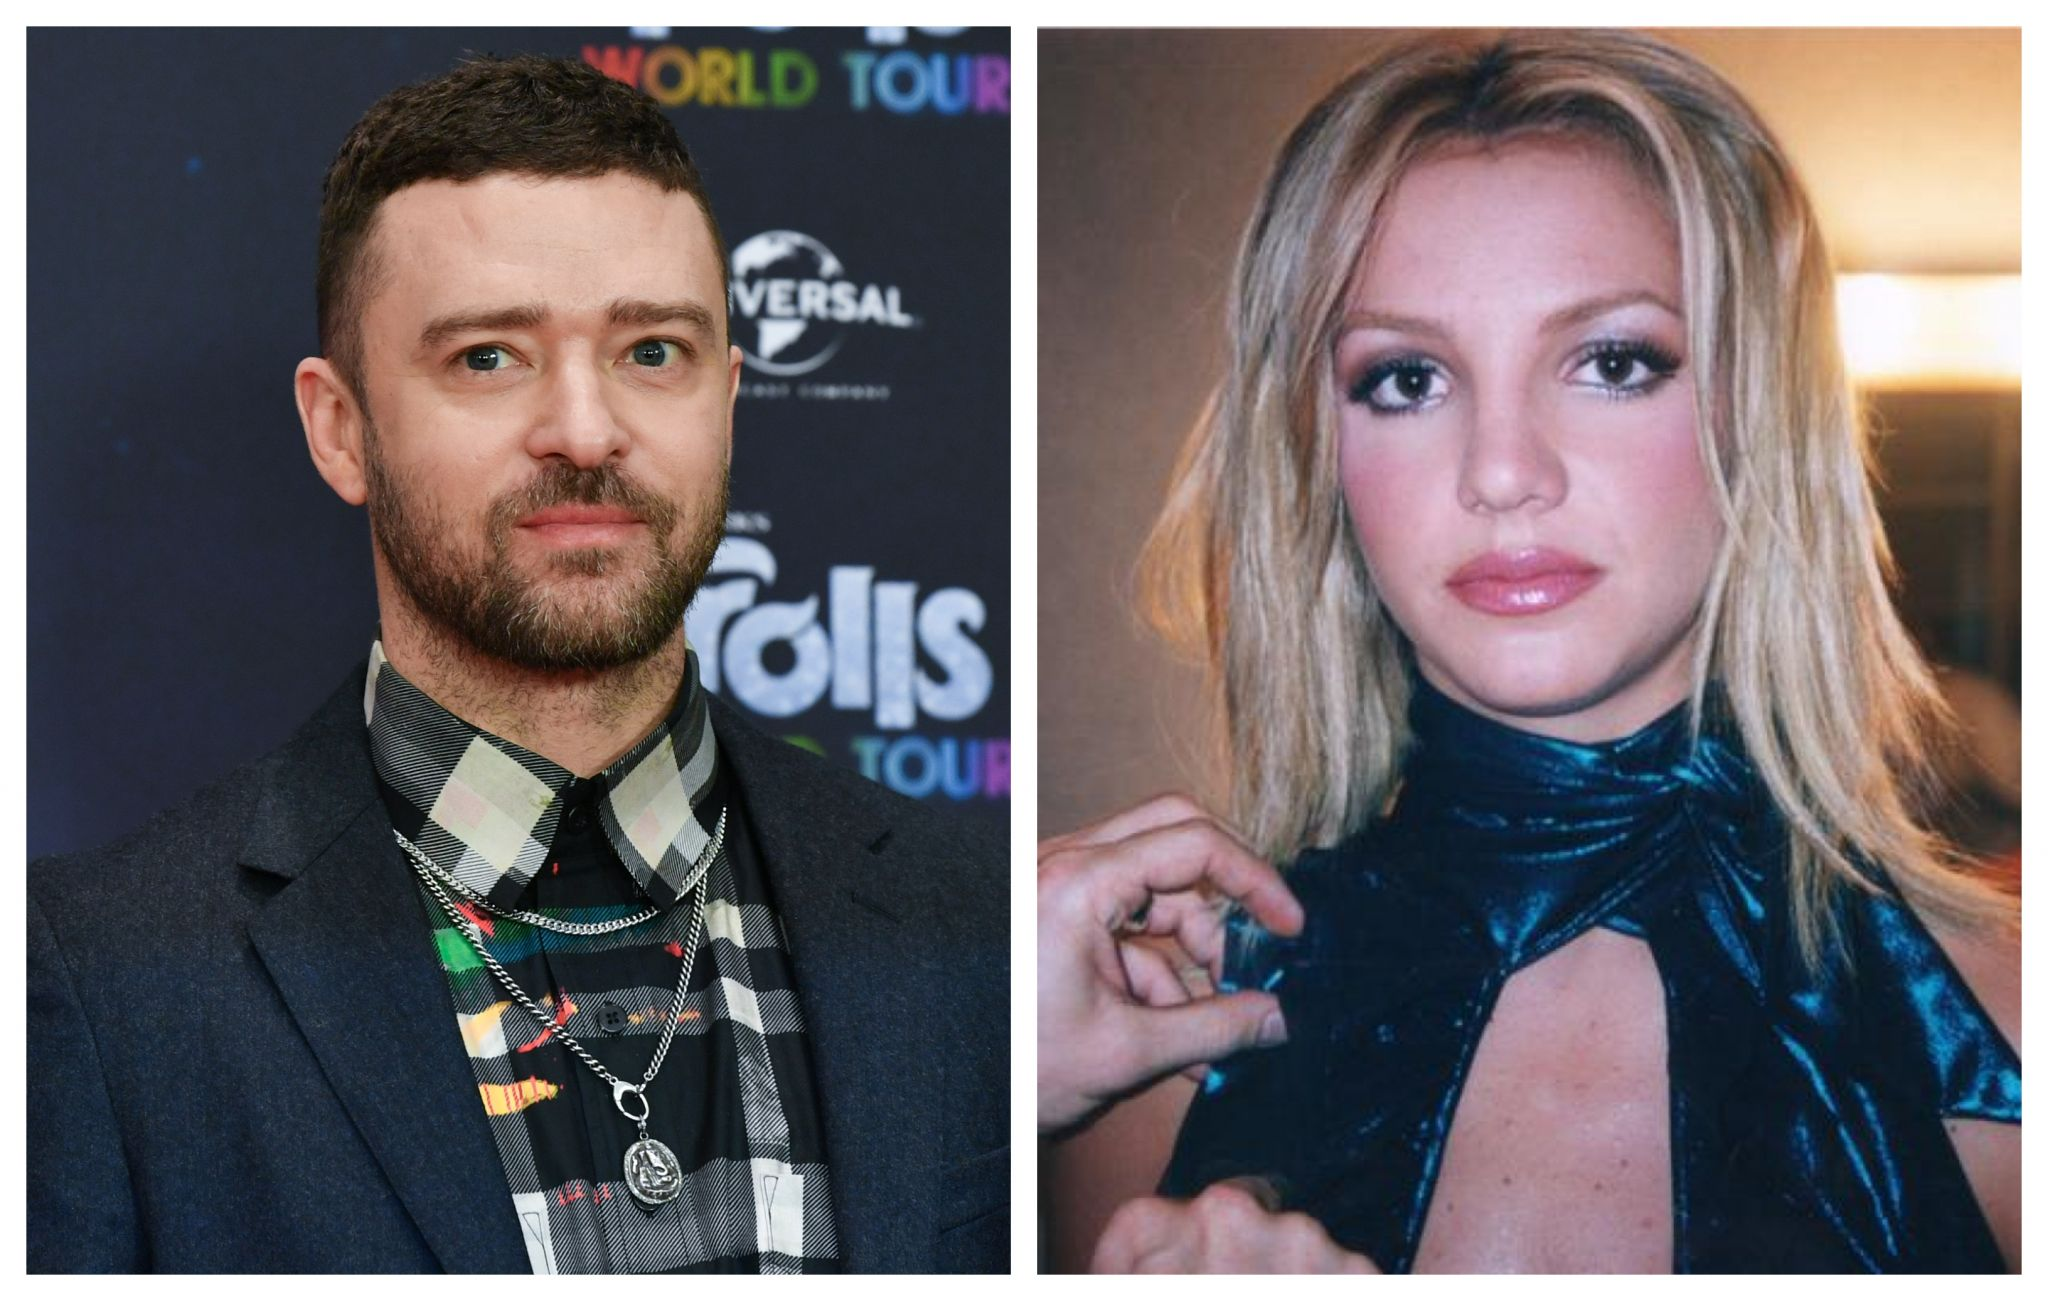 Justin Timberlake under fire after explosive 'Framing Britney Spears' documentary - Chron